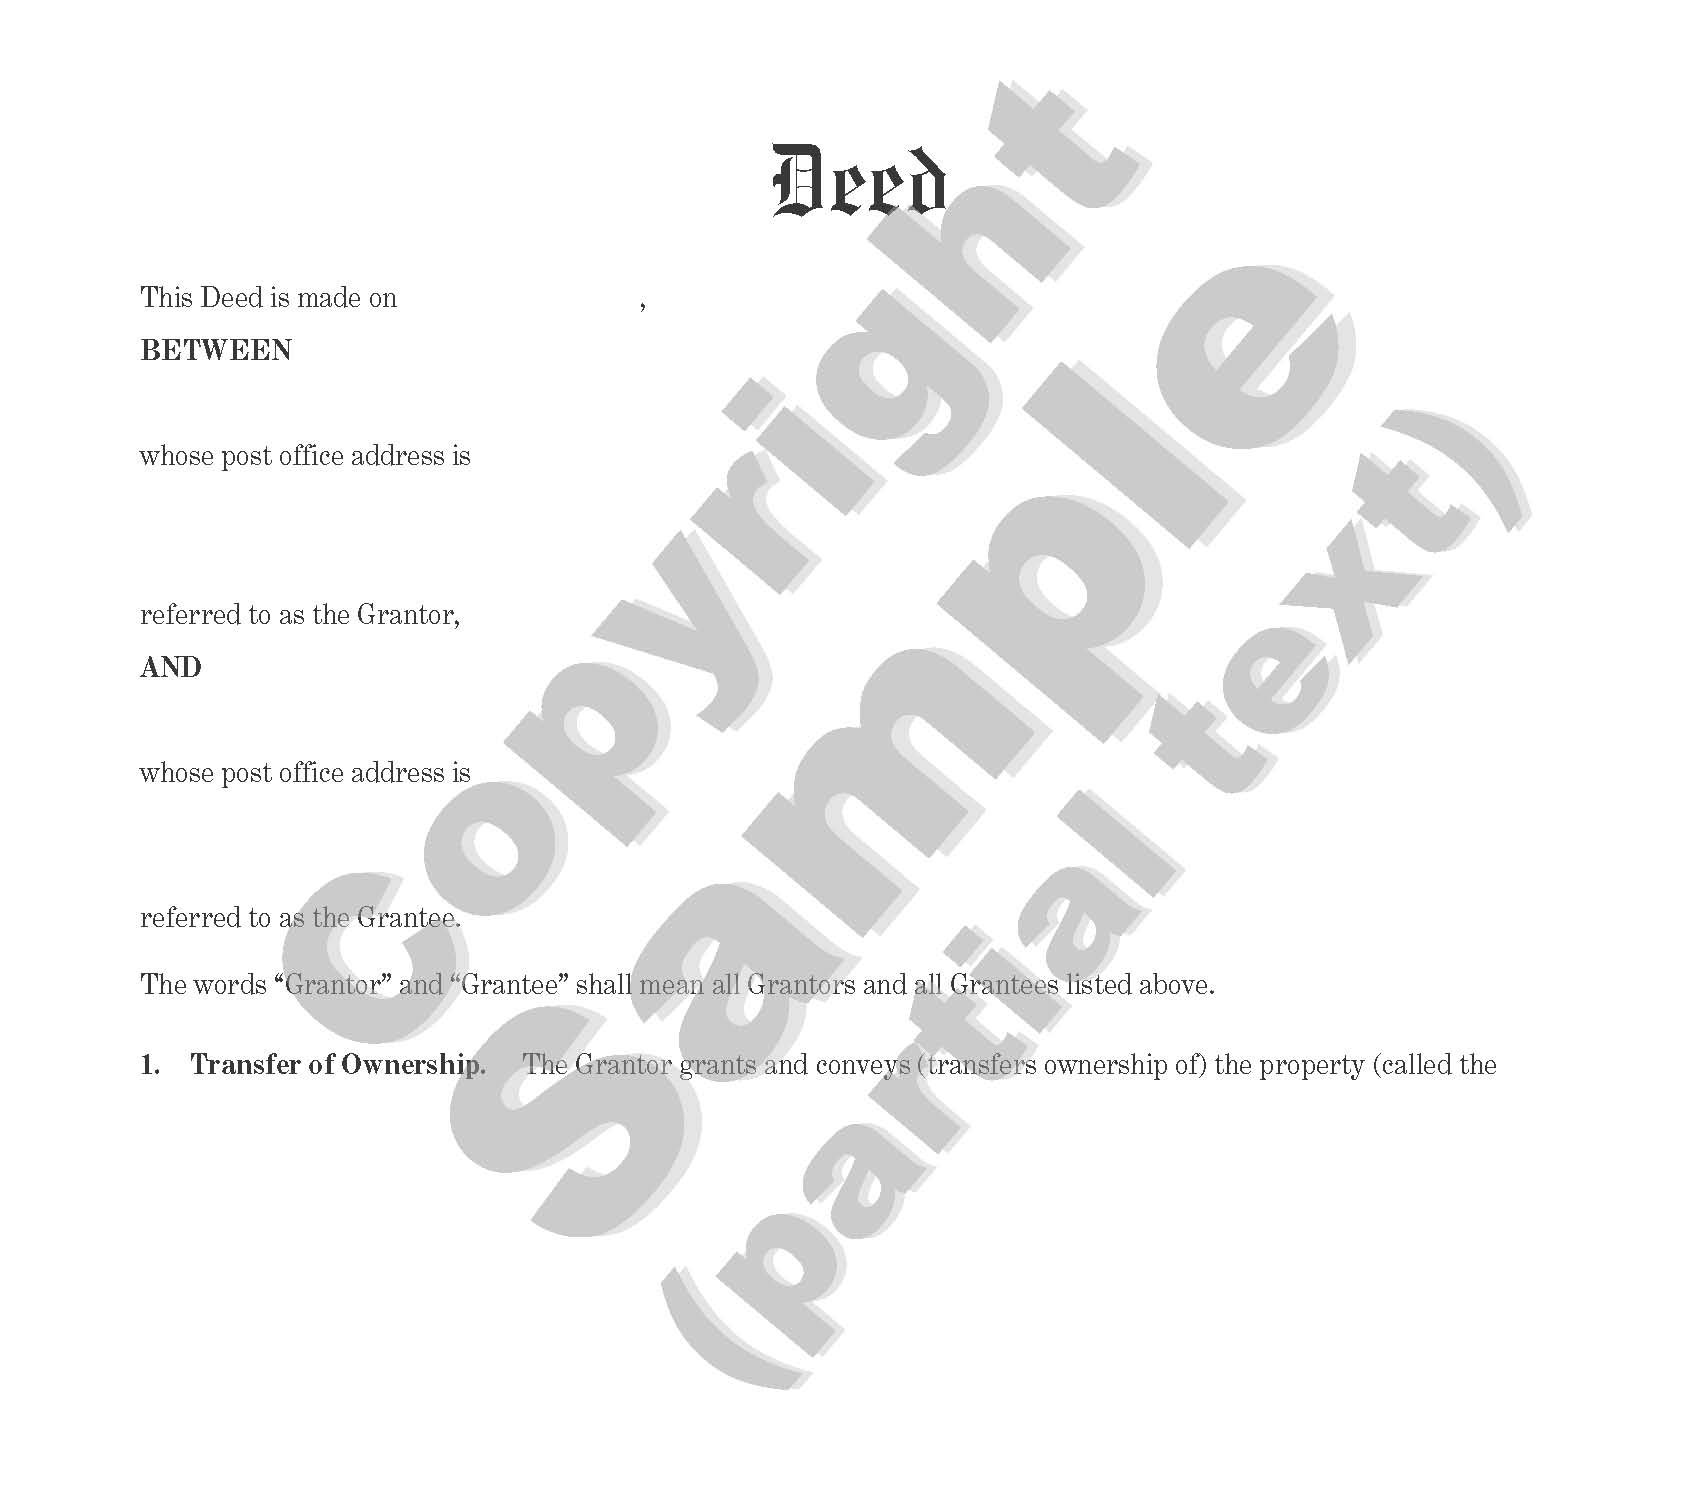 Deed - Bargain and Sale - Individual to Individual or Corporate - Plain Language